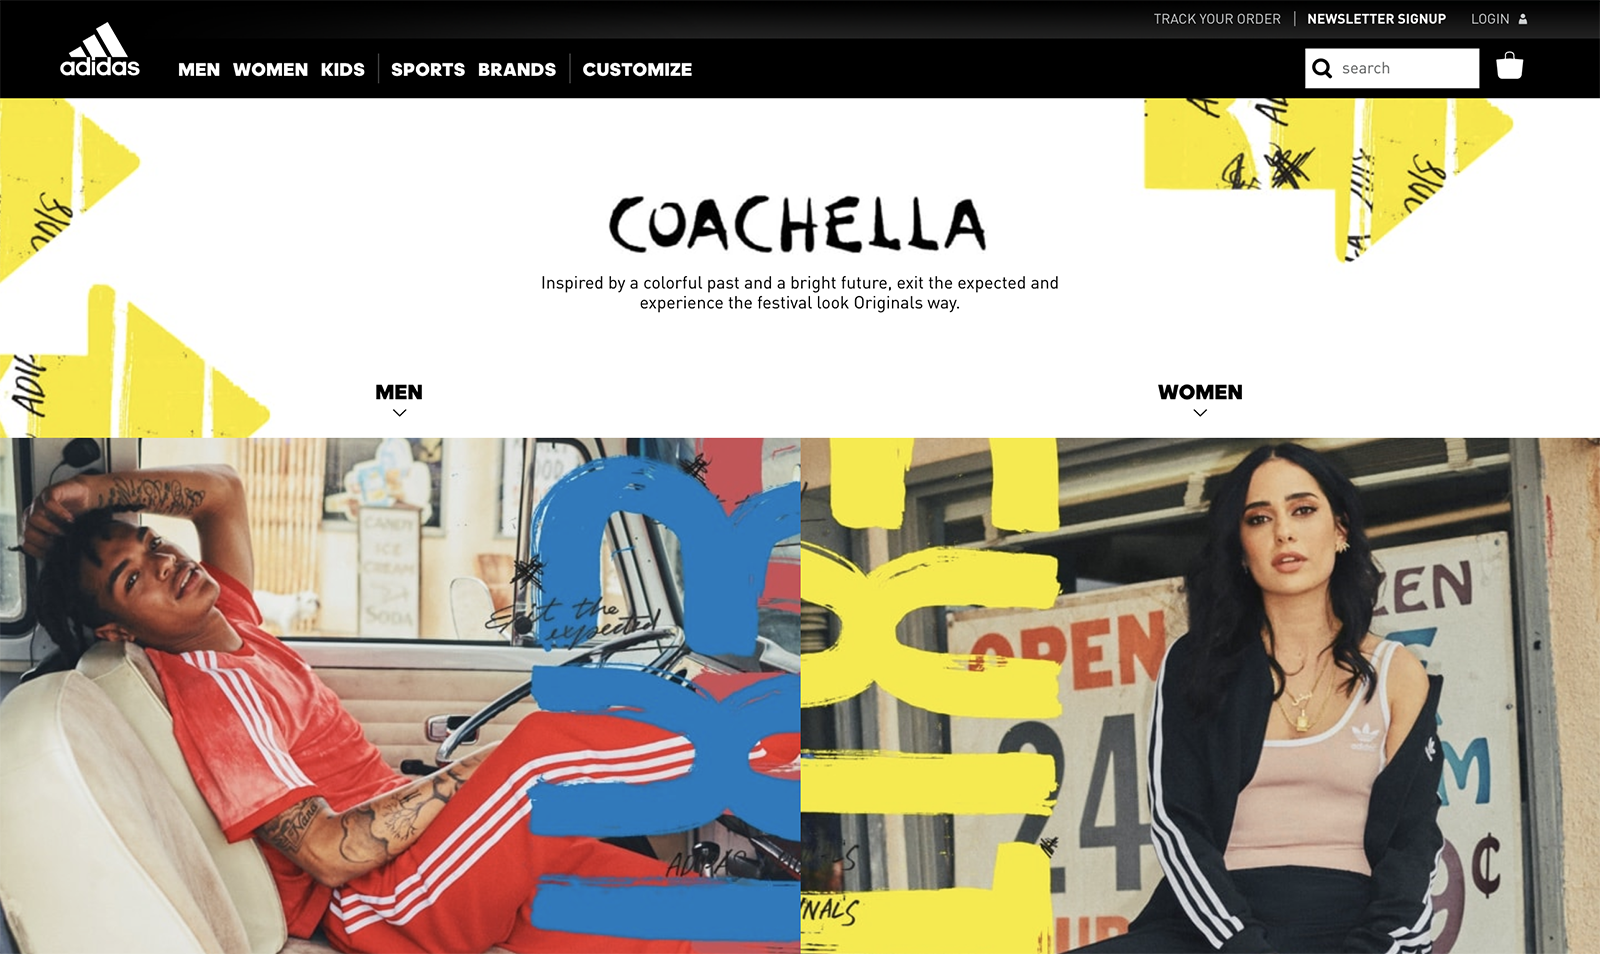 The adidas webpage with the Coachella Exit the Expected campaign graphics. Yellow and blue handwritten EXIT graphics overlay photoshoot images of a guy lounging in the VW bus, and a woman standing in front of the desert gas station.